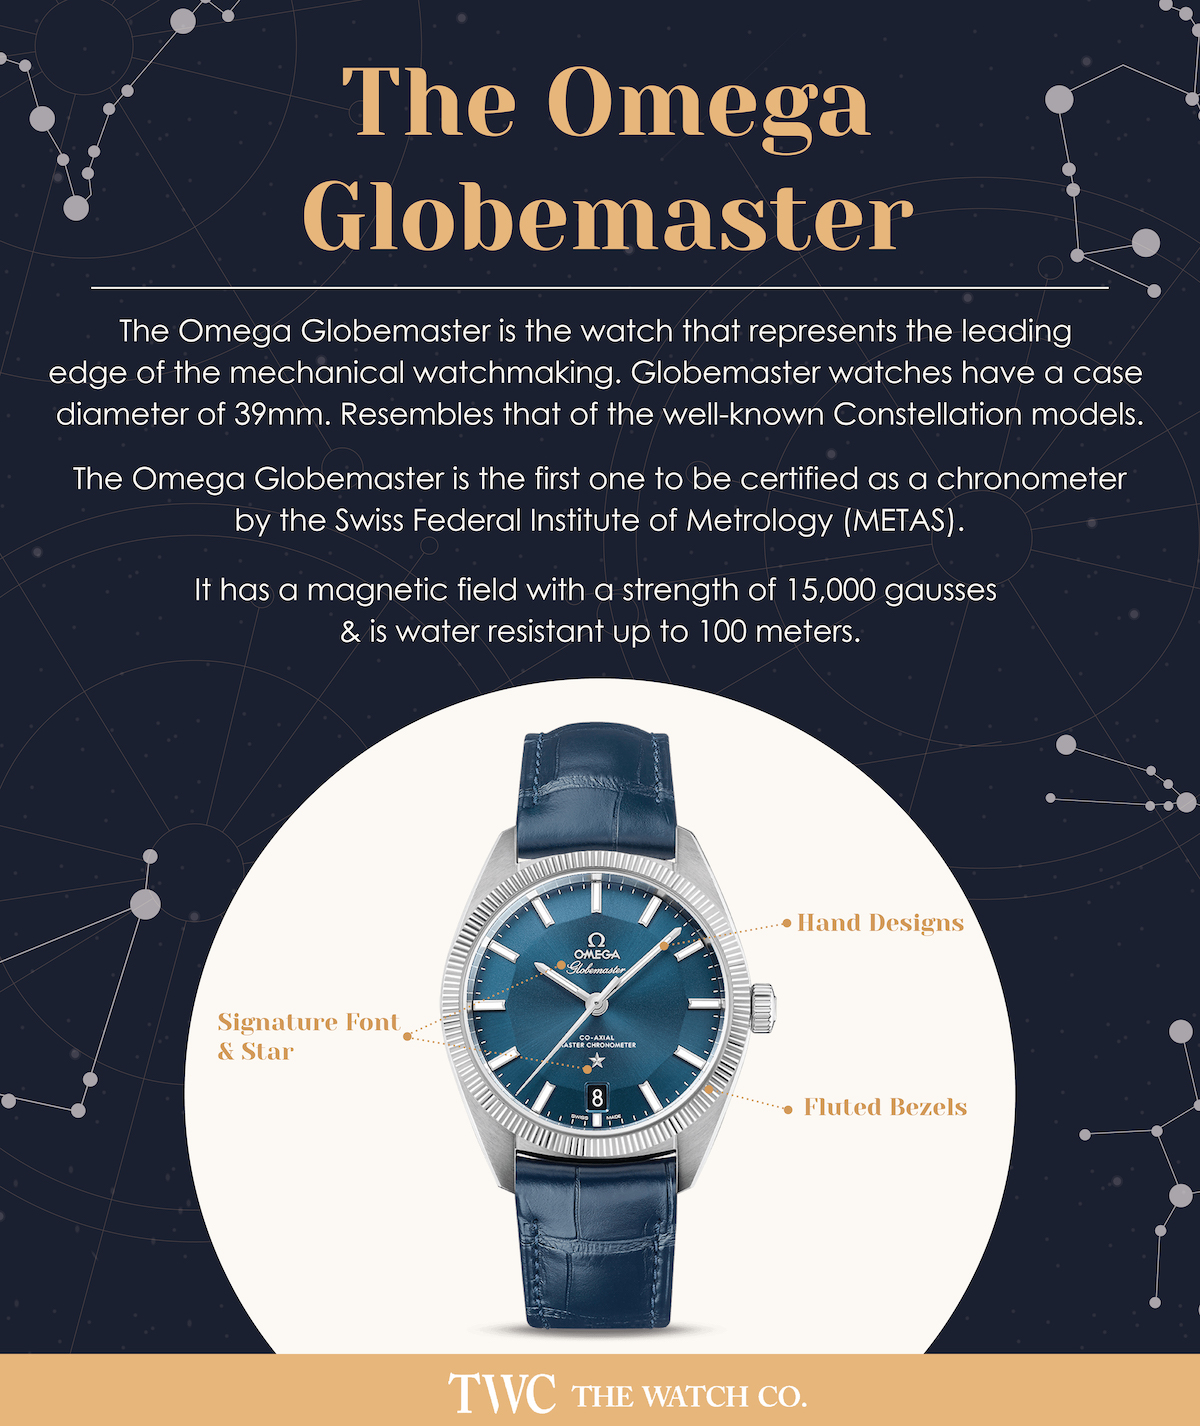 Omega Globemaster, Omega Watches